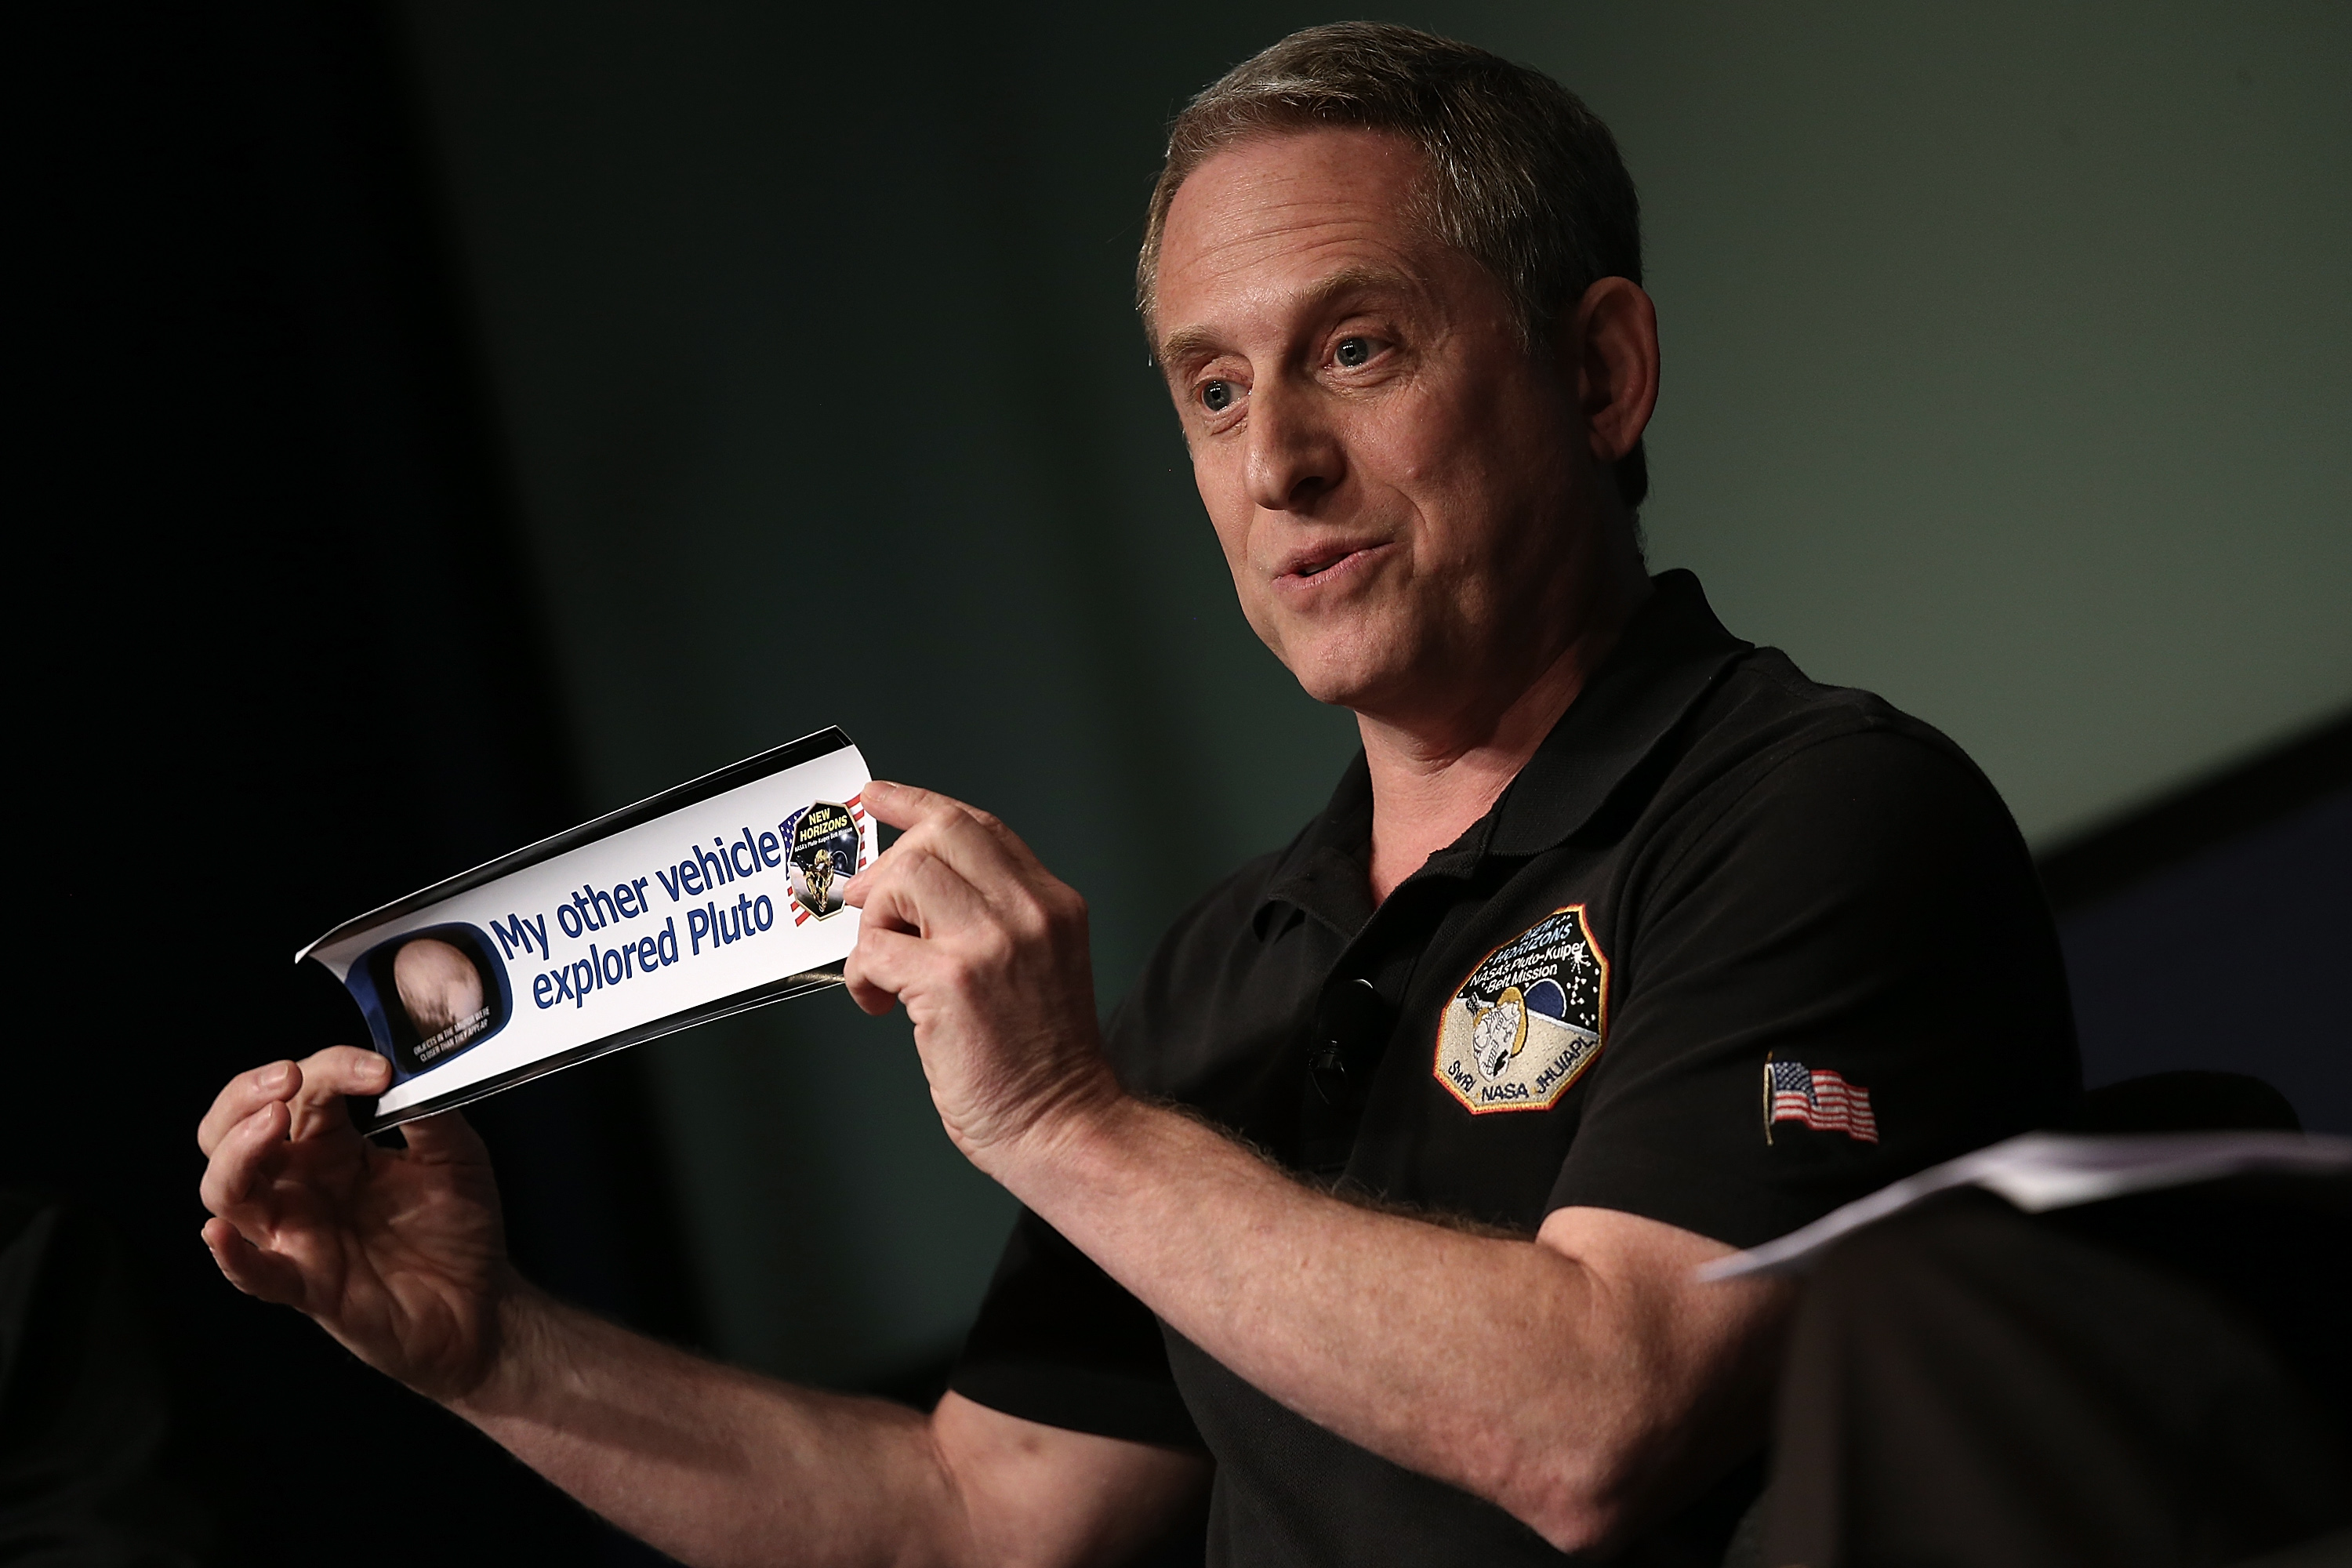 Alan Stern, principal investigator of NASA's New Horizons mission team, holds up a bumper sticker while delivering remarks during a press briefing at NASA headquarters in Washington, DC on July 24, 2015.